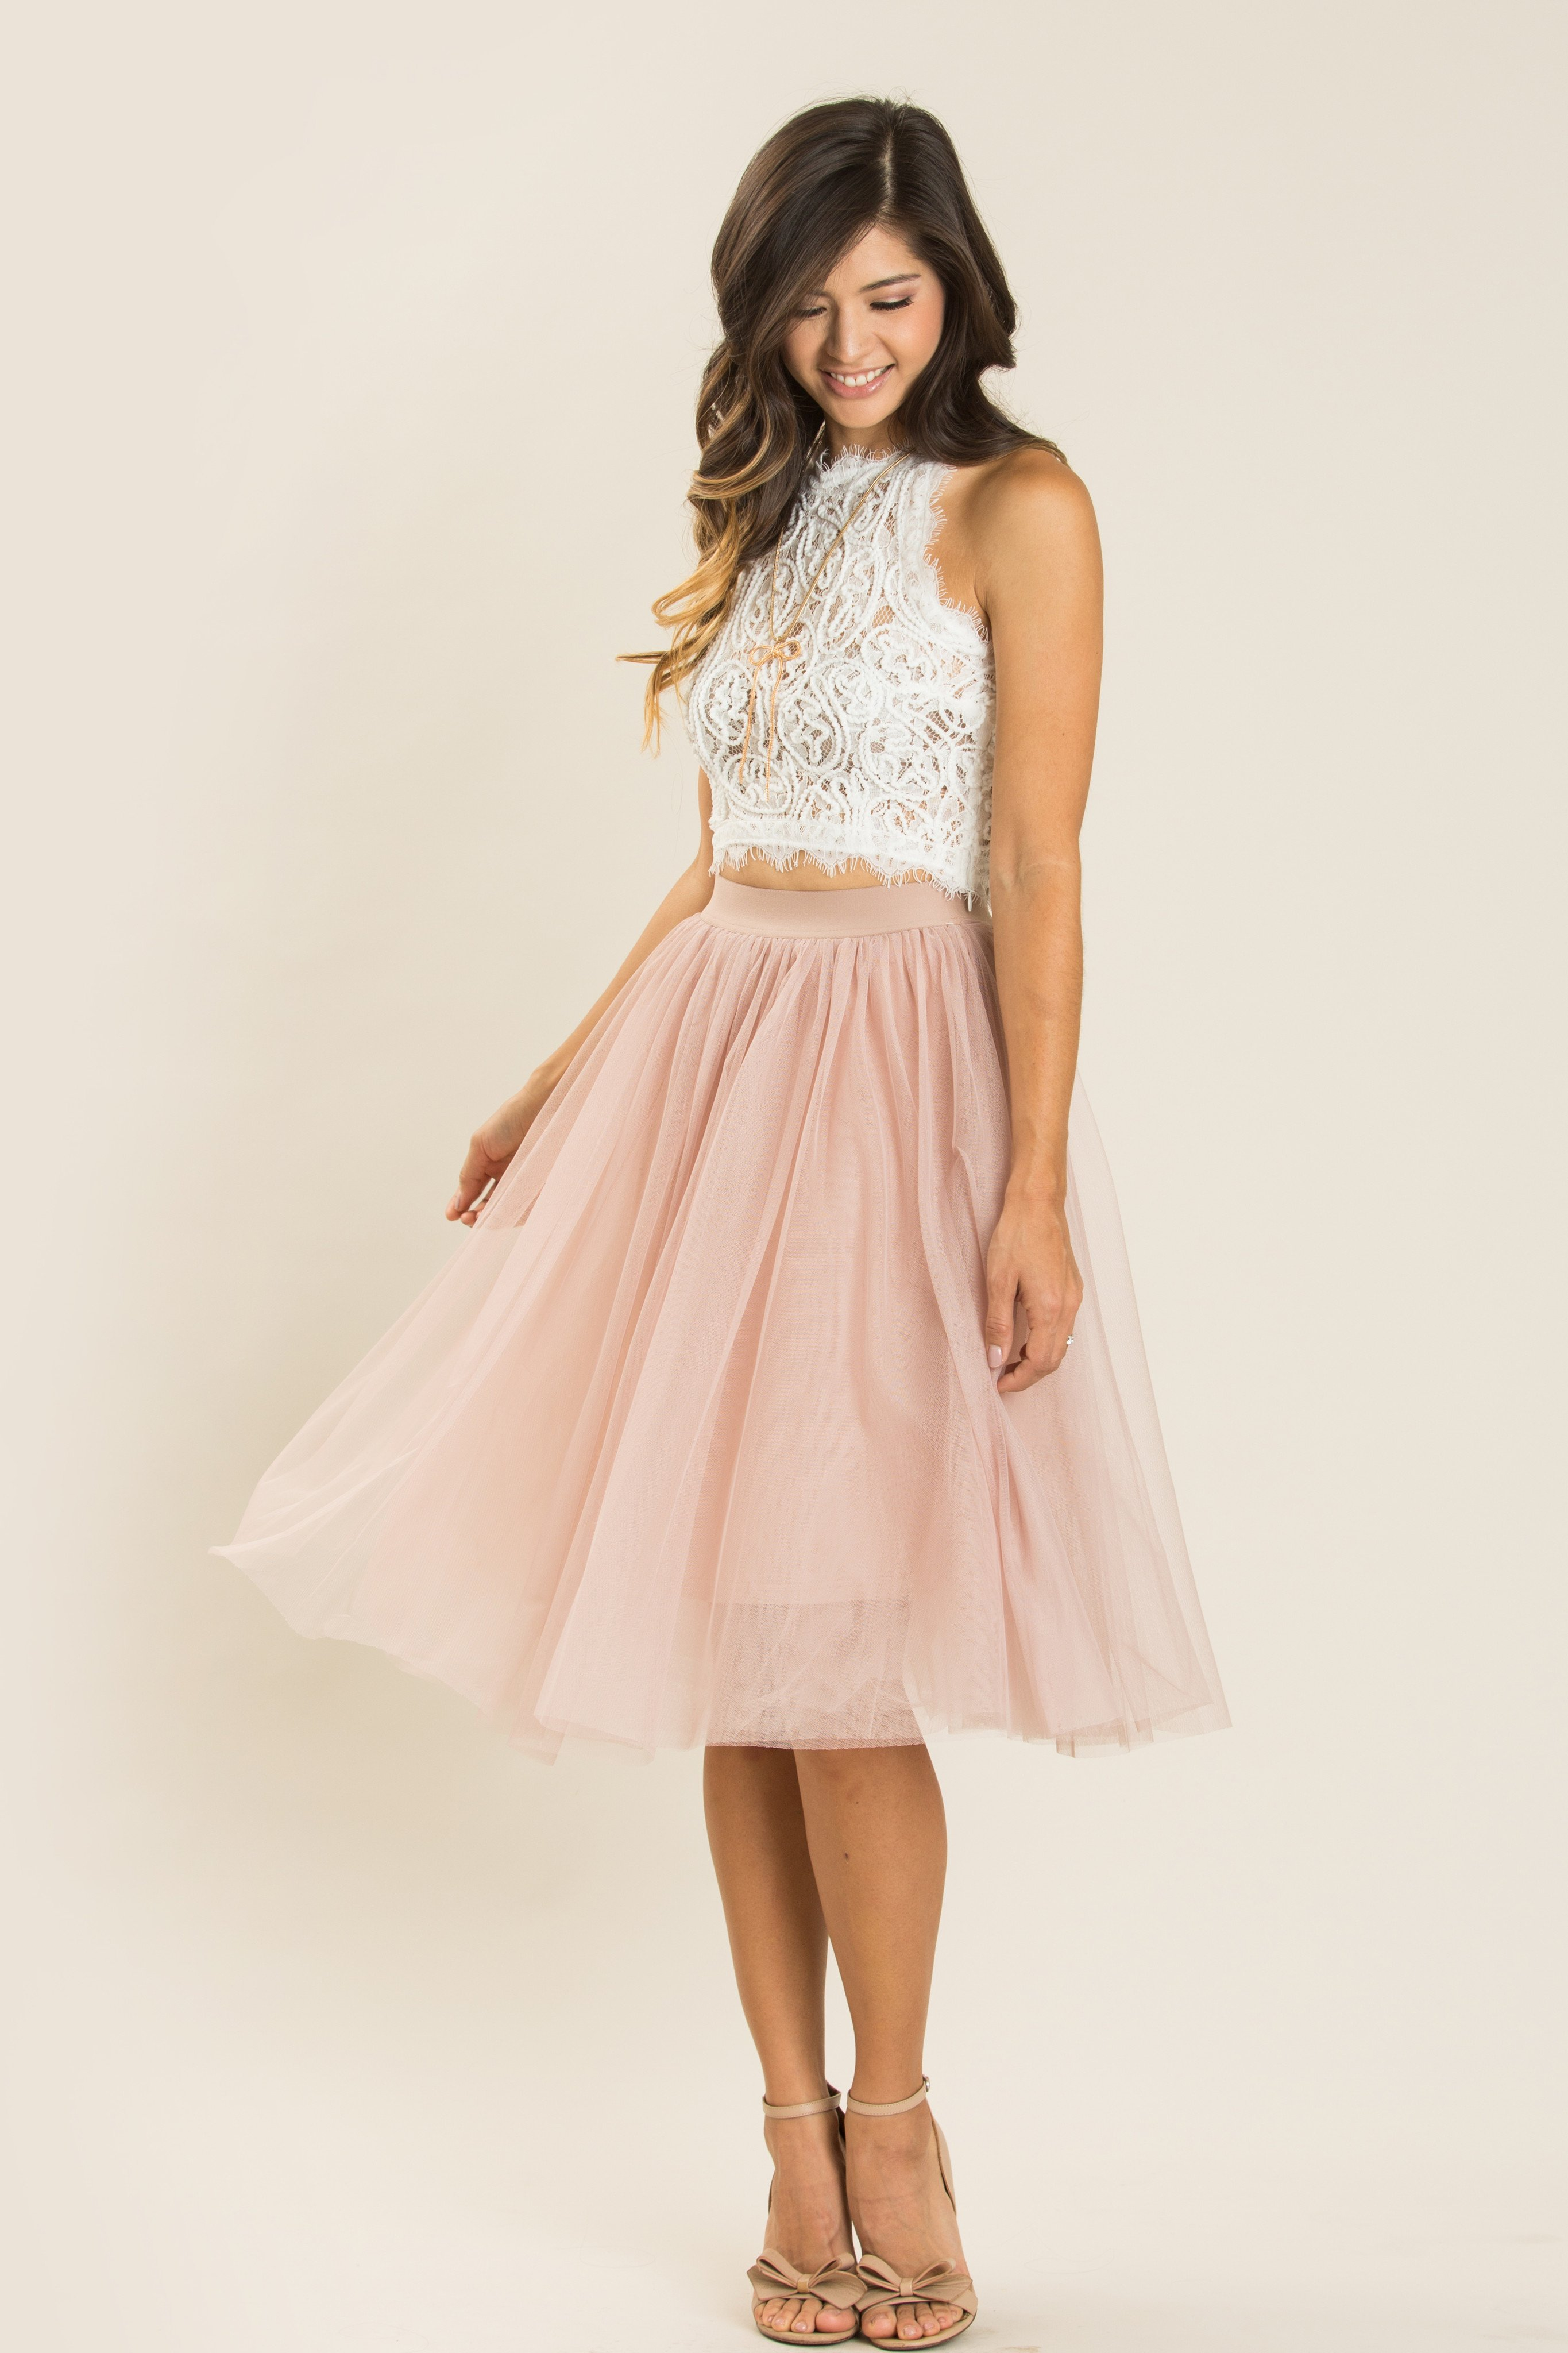 Tulle Skirt Dress | Tulle Midi Skirt | Puffy Skirt Dress